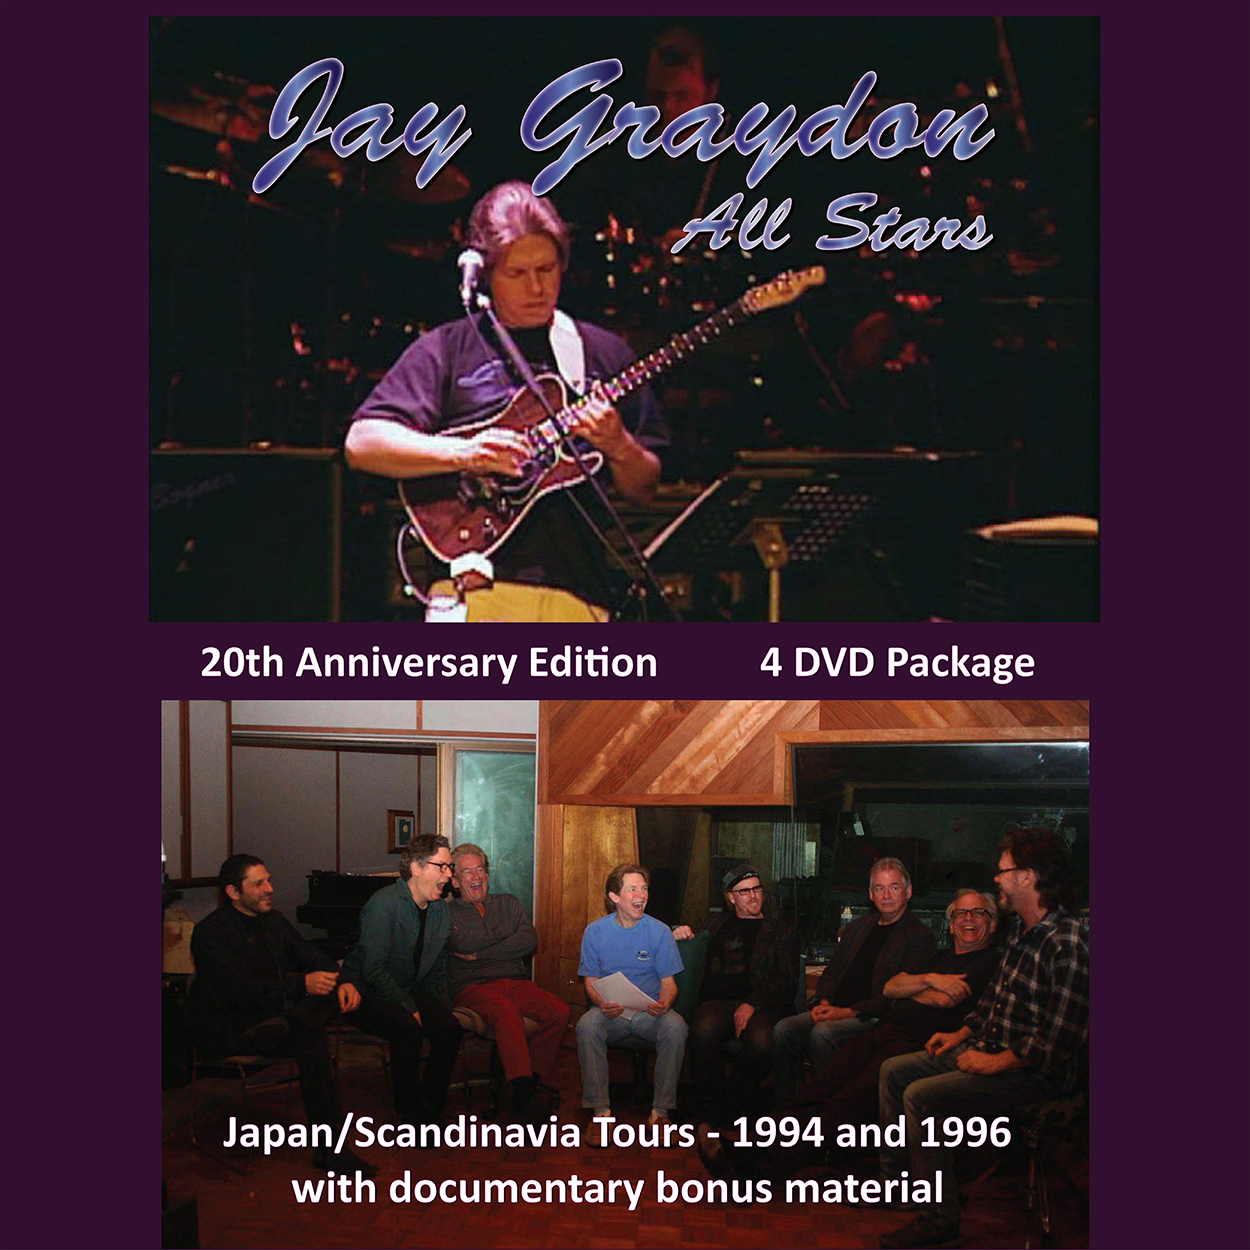 Jay Graydon All Stars 20th Anniversary Edition